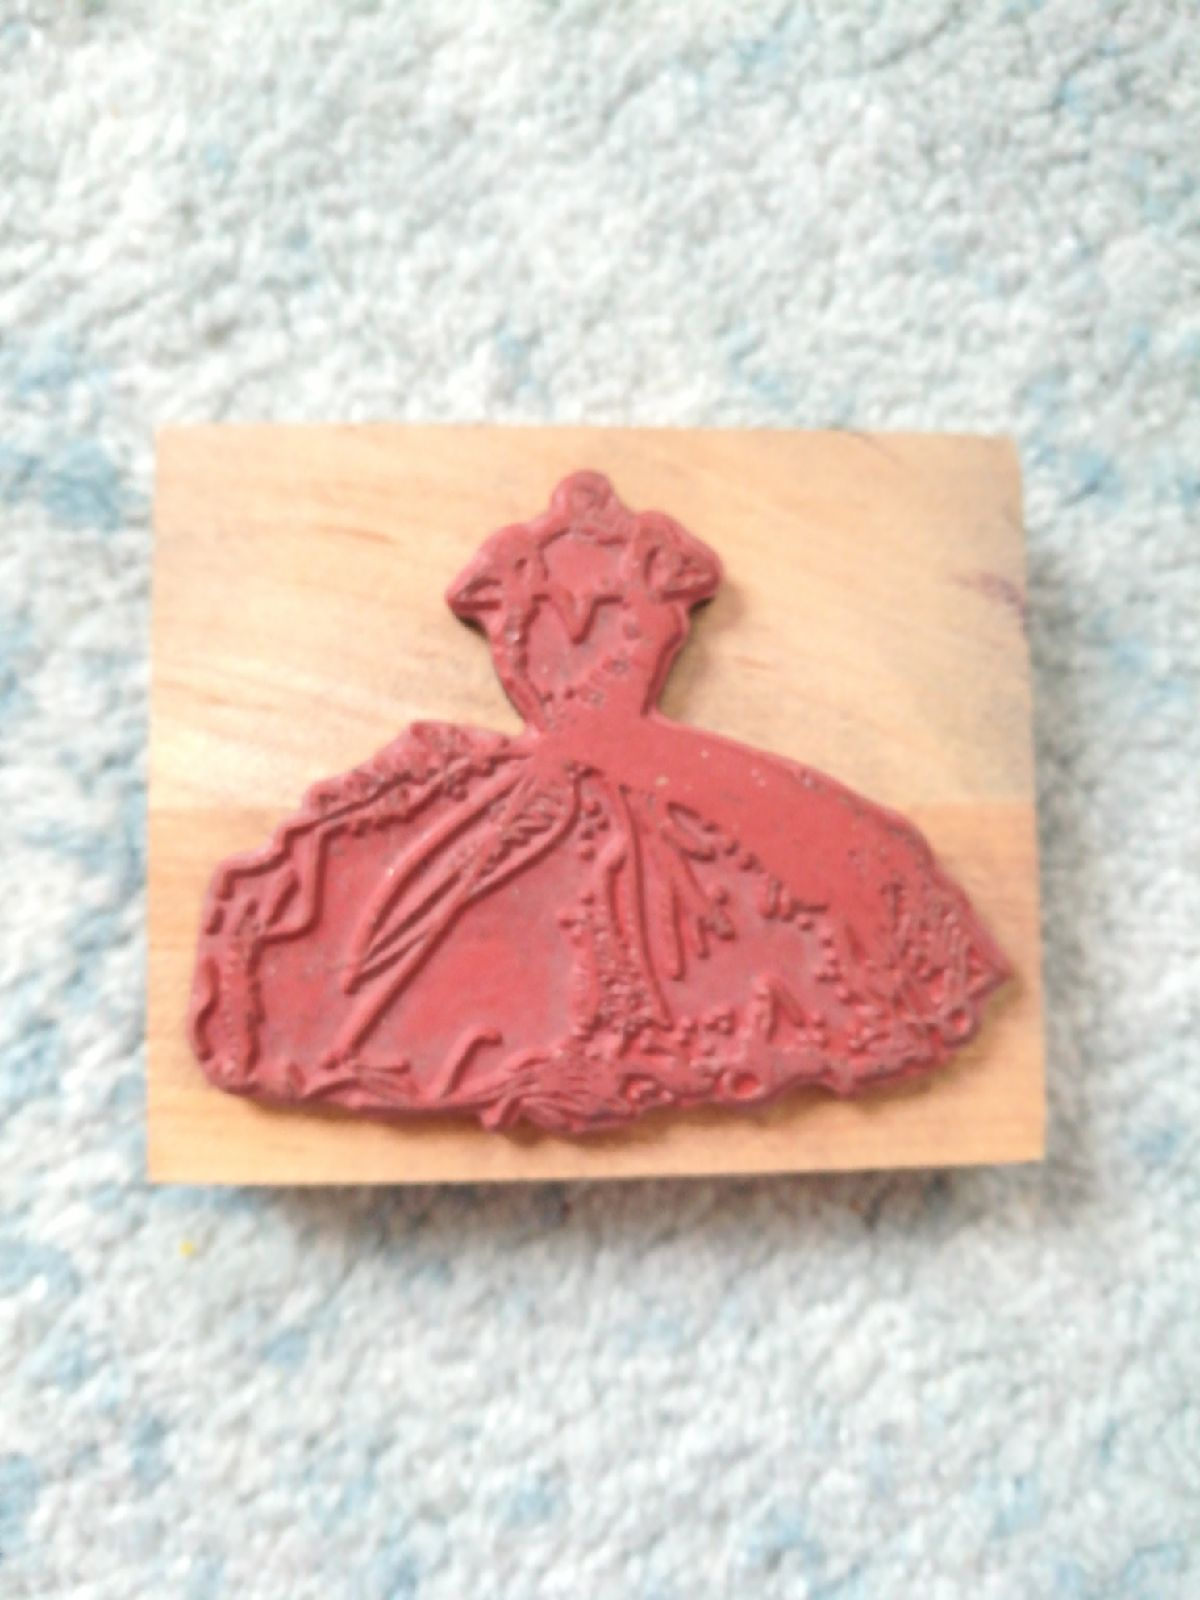 Large wedding dress rubber stamp mercari the selling app for Wedding dress rubber stamp